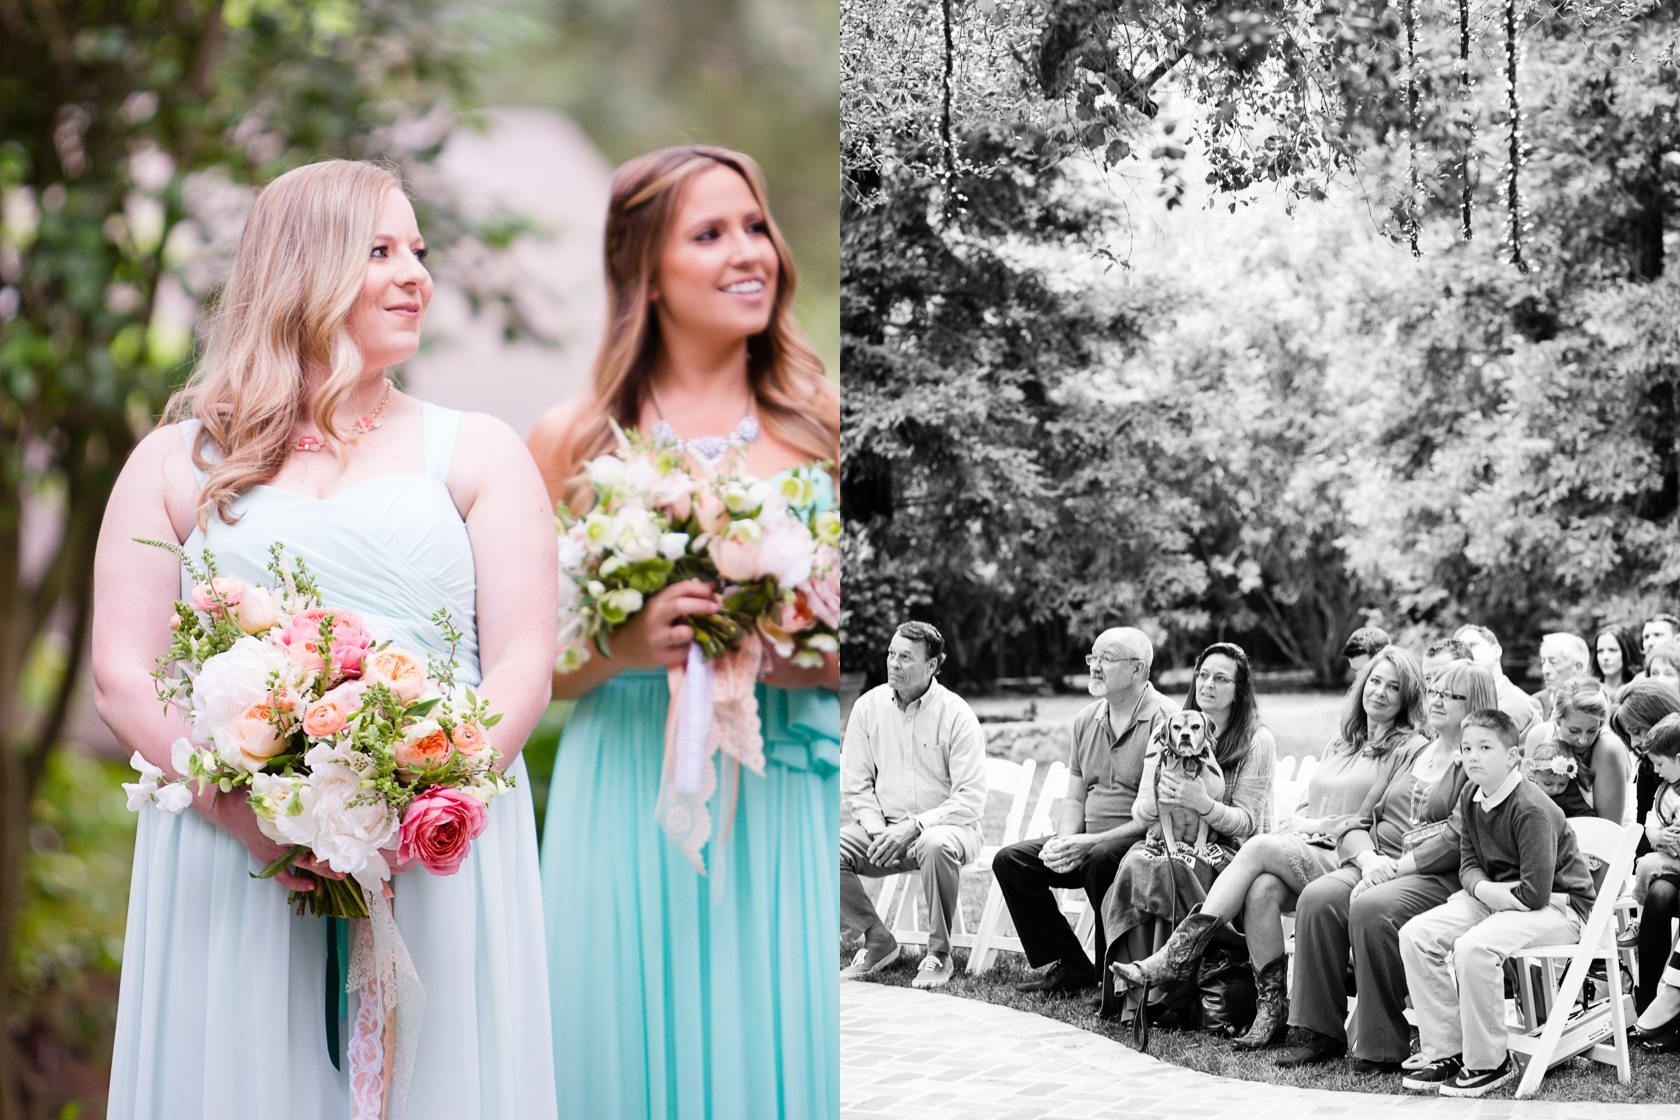 The_Printed_Palette_Wedding_at_Calamigos_Ranch_065.jpg